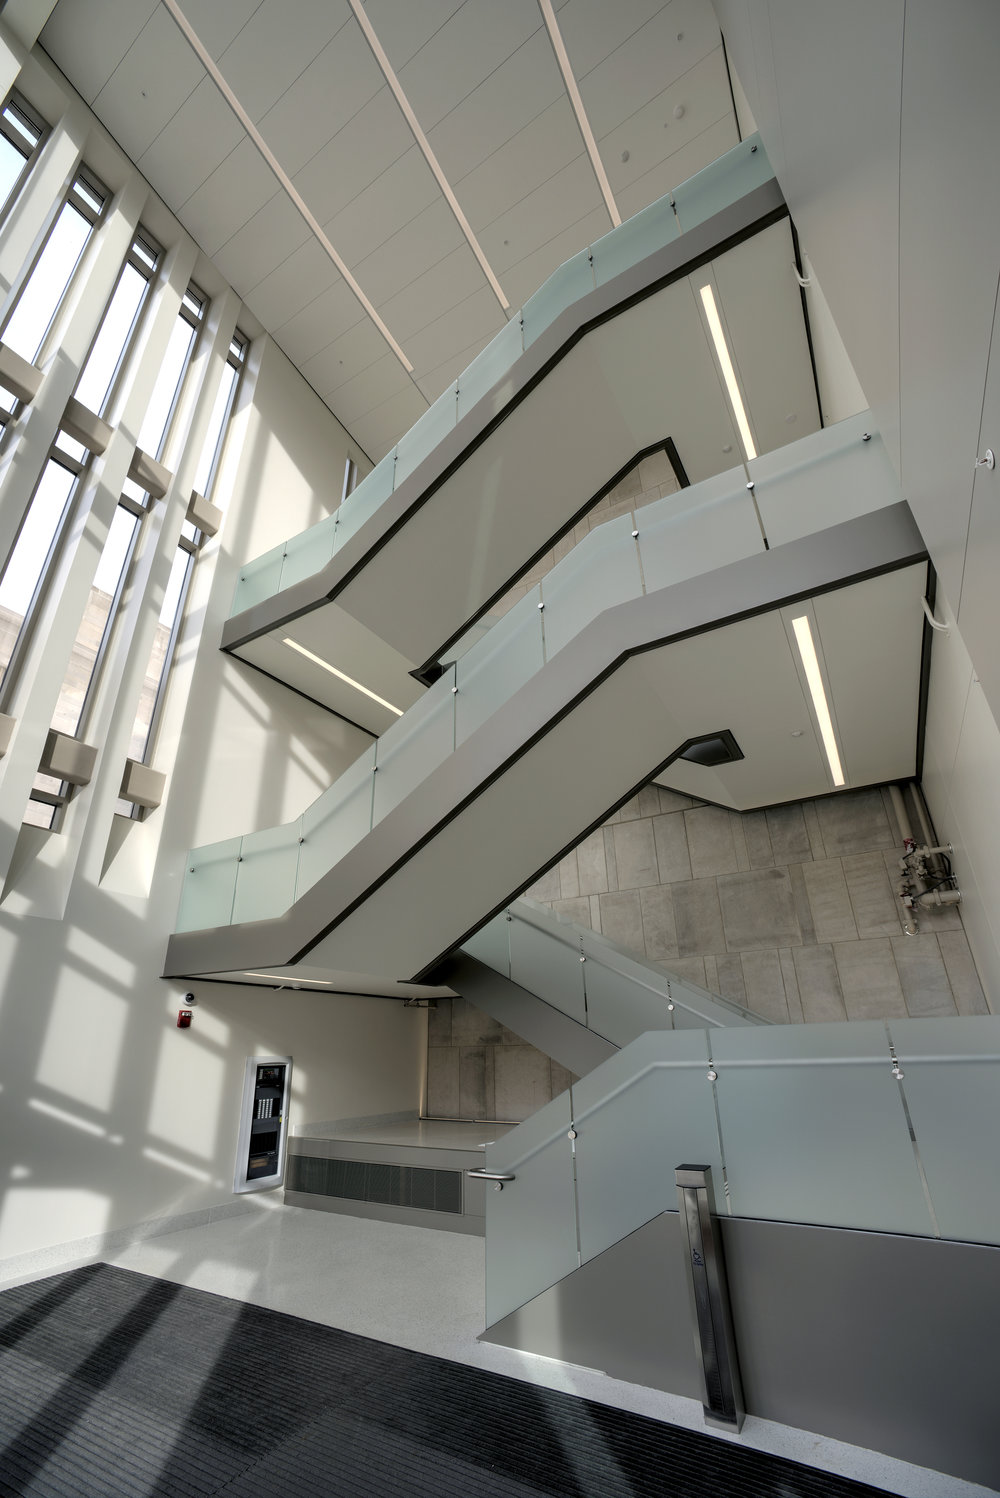 Stairs with Windows.jpg